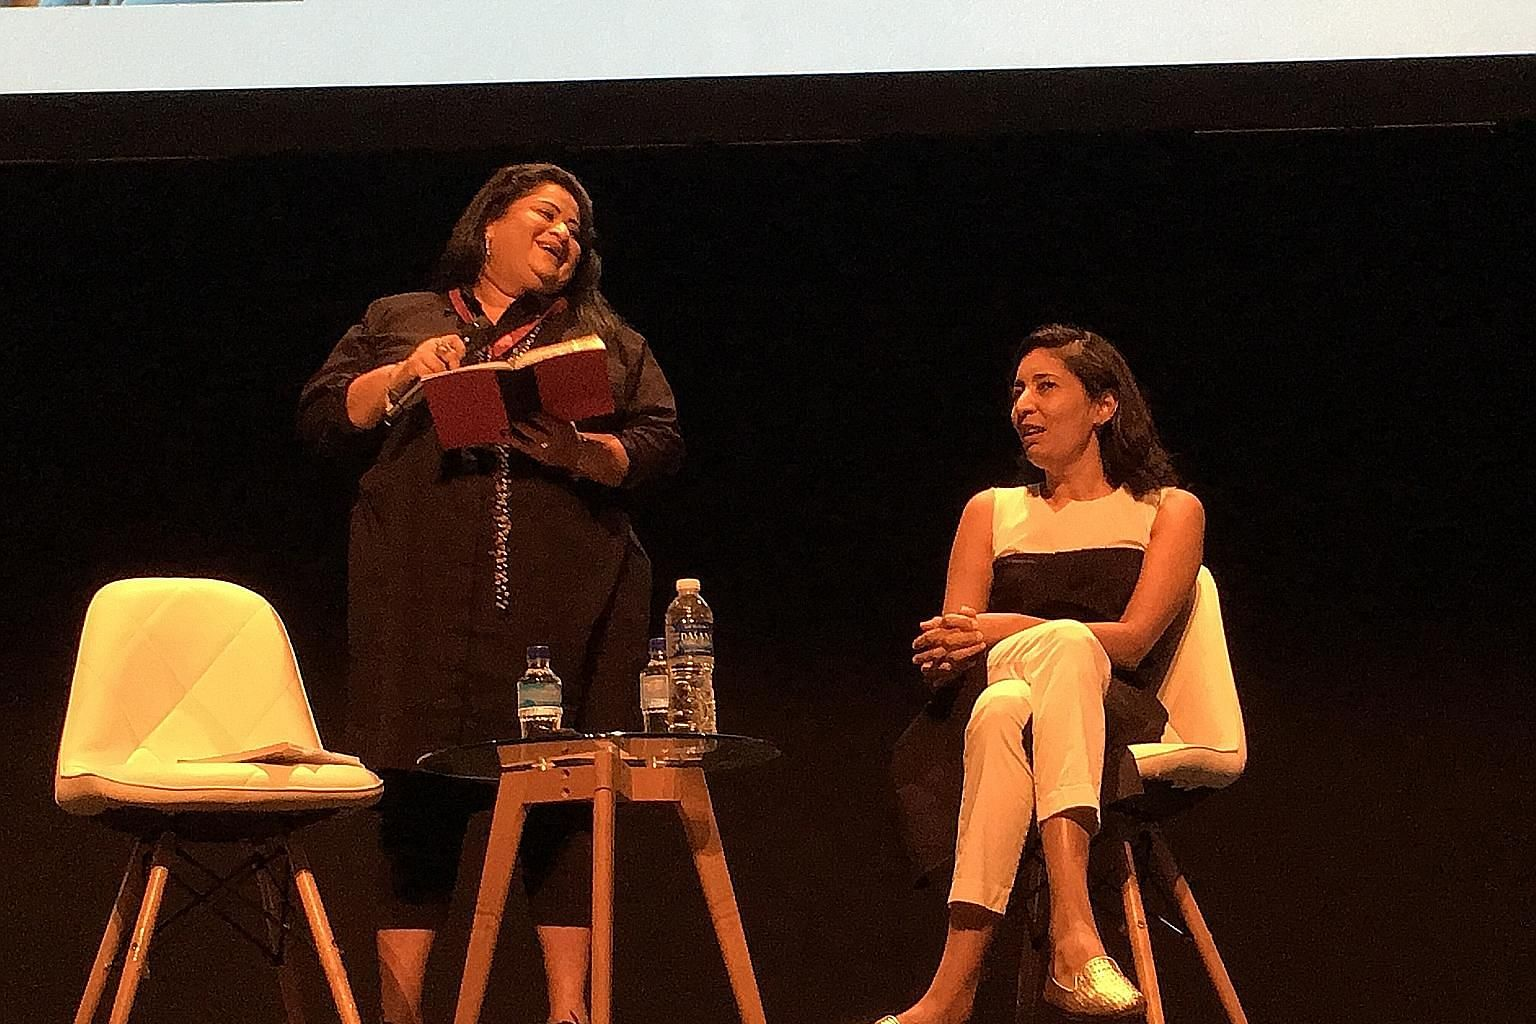 Indian-American author Kiran Desai (right) at her talk, Place And Displacement: Finding Oneself In 2018, with moderator Carolyn Camoens.